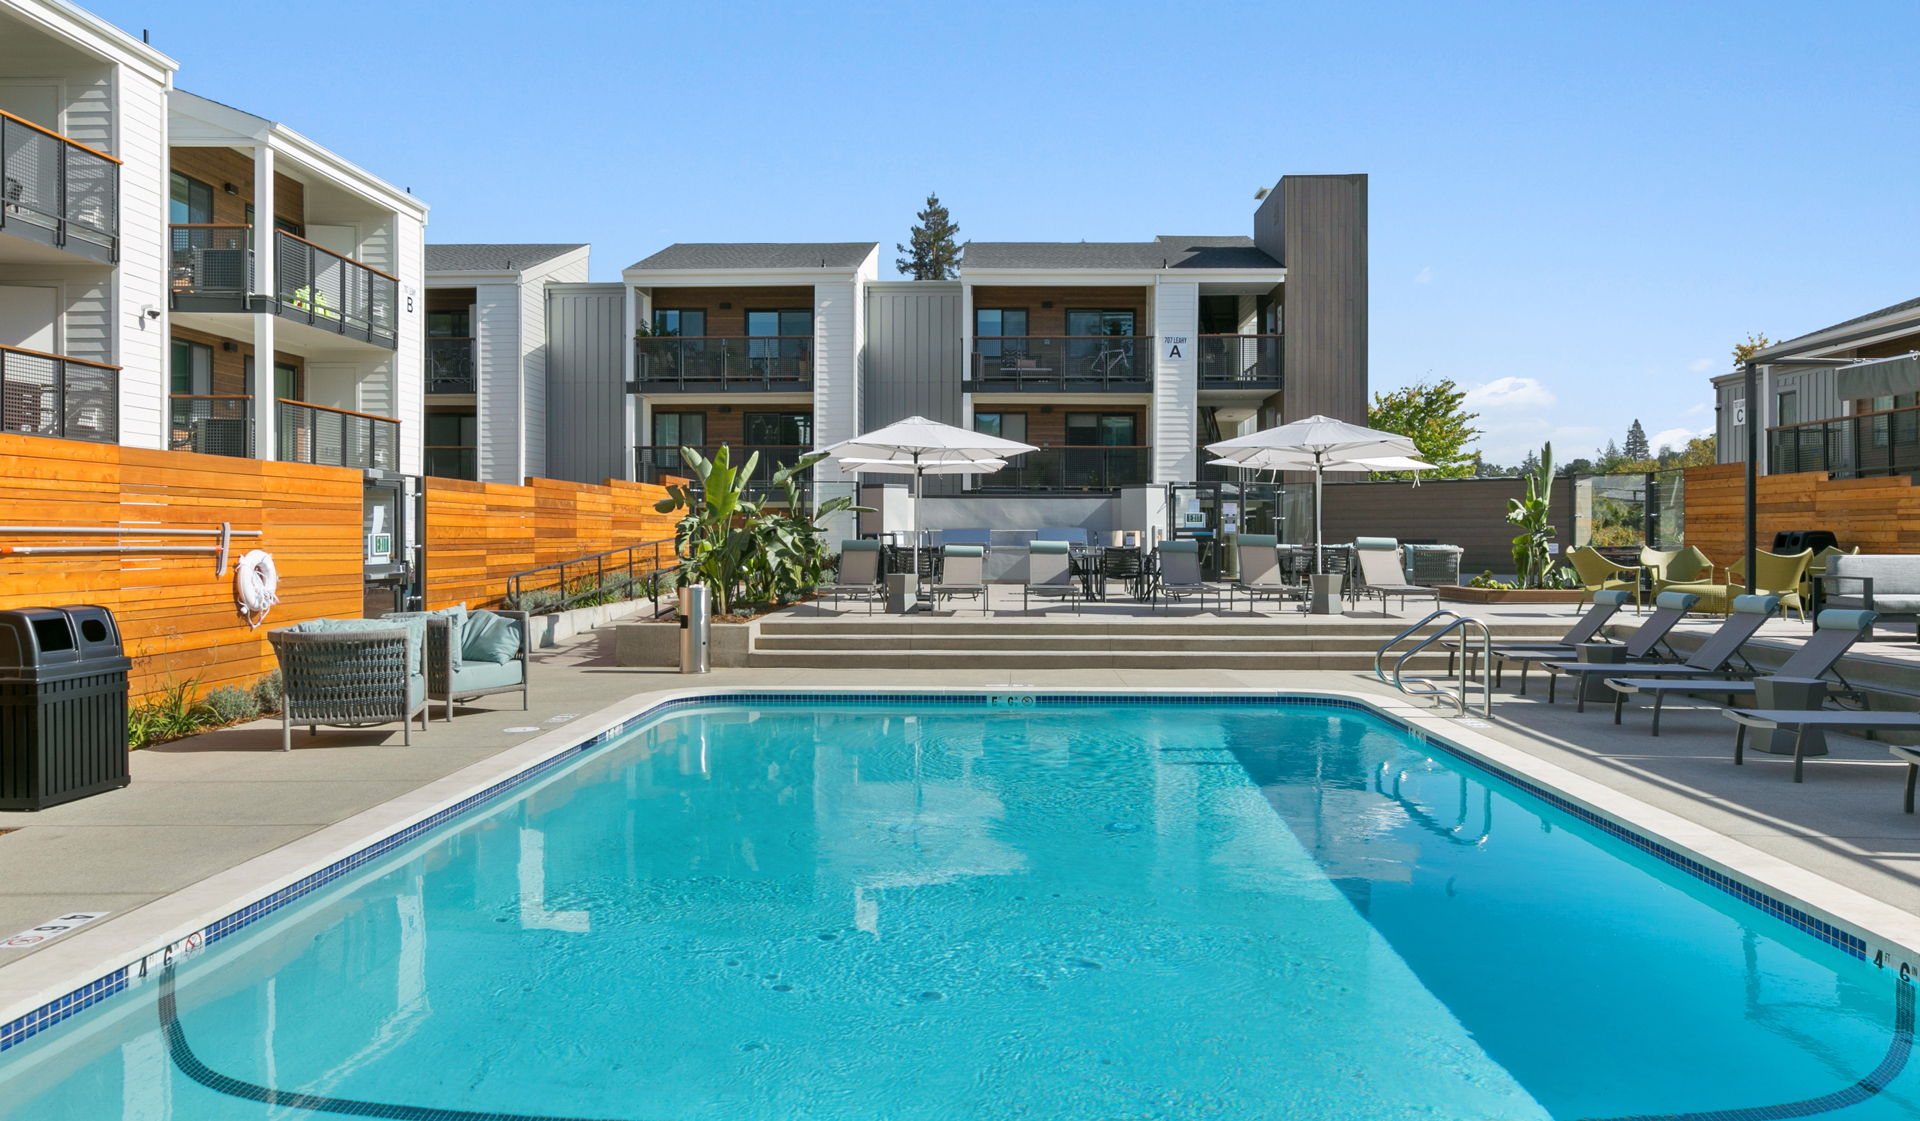 707 Leahy Apartments in Redwood City, CA - pool